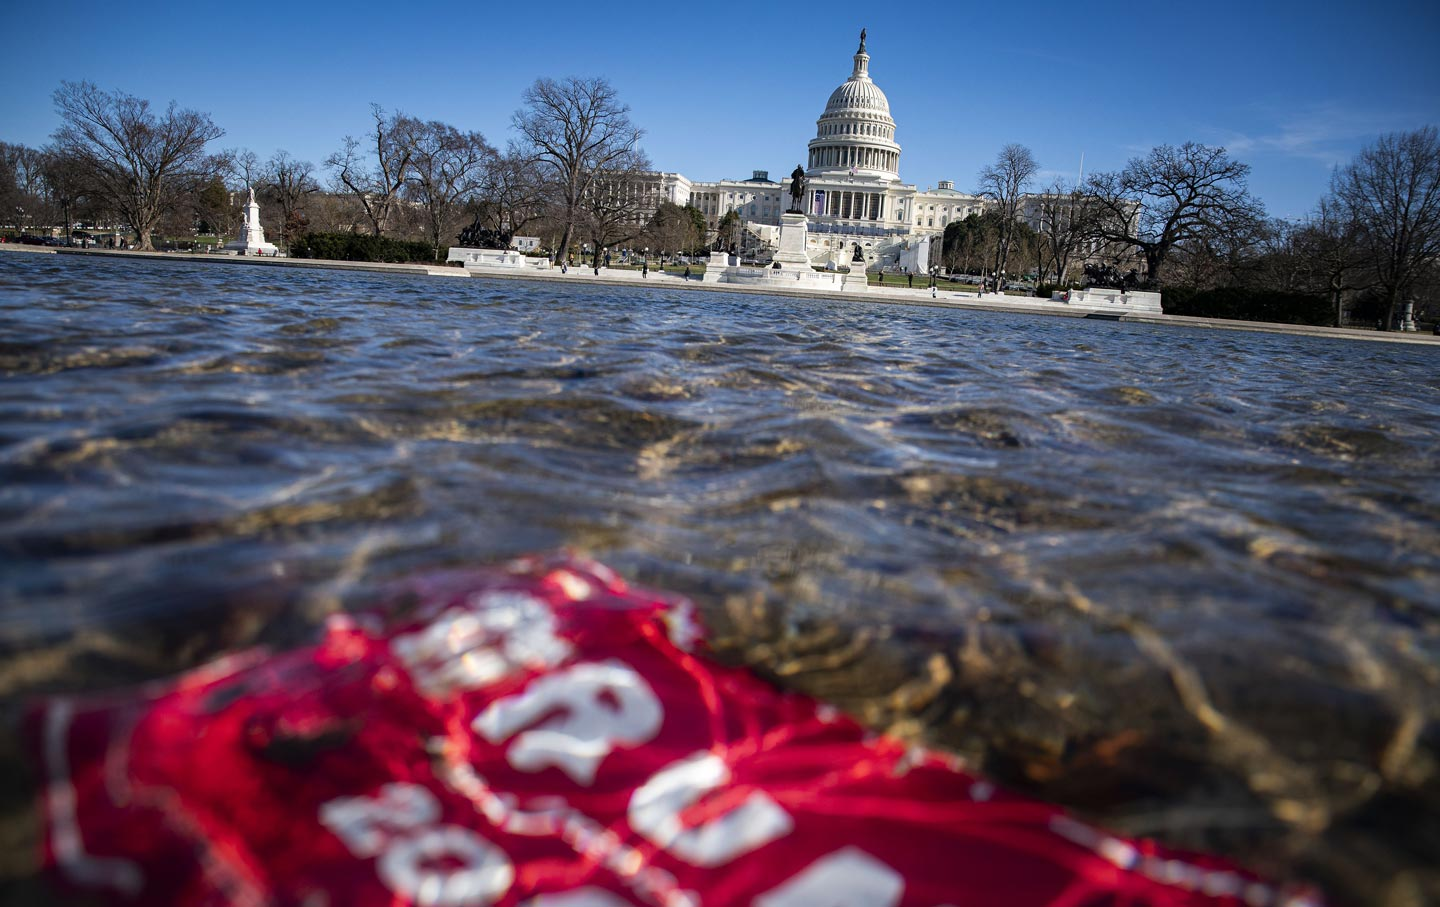 capitol-trump-sign-water-gty-img